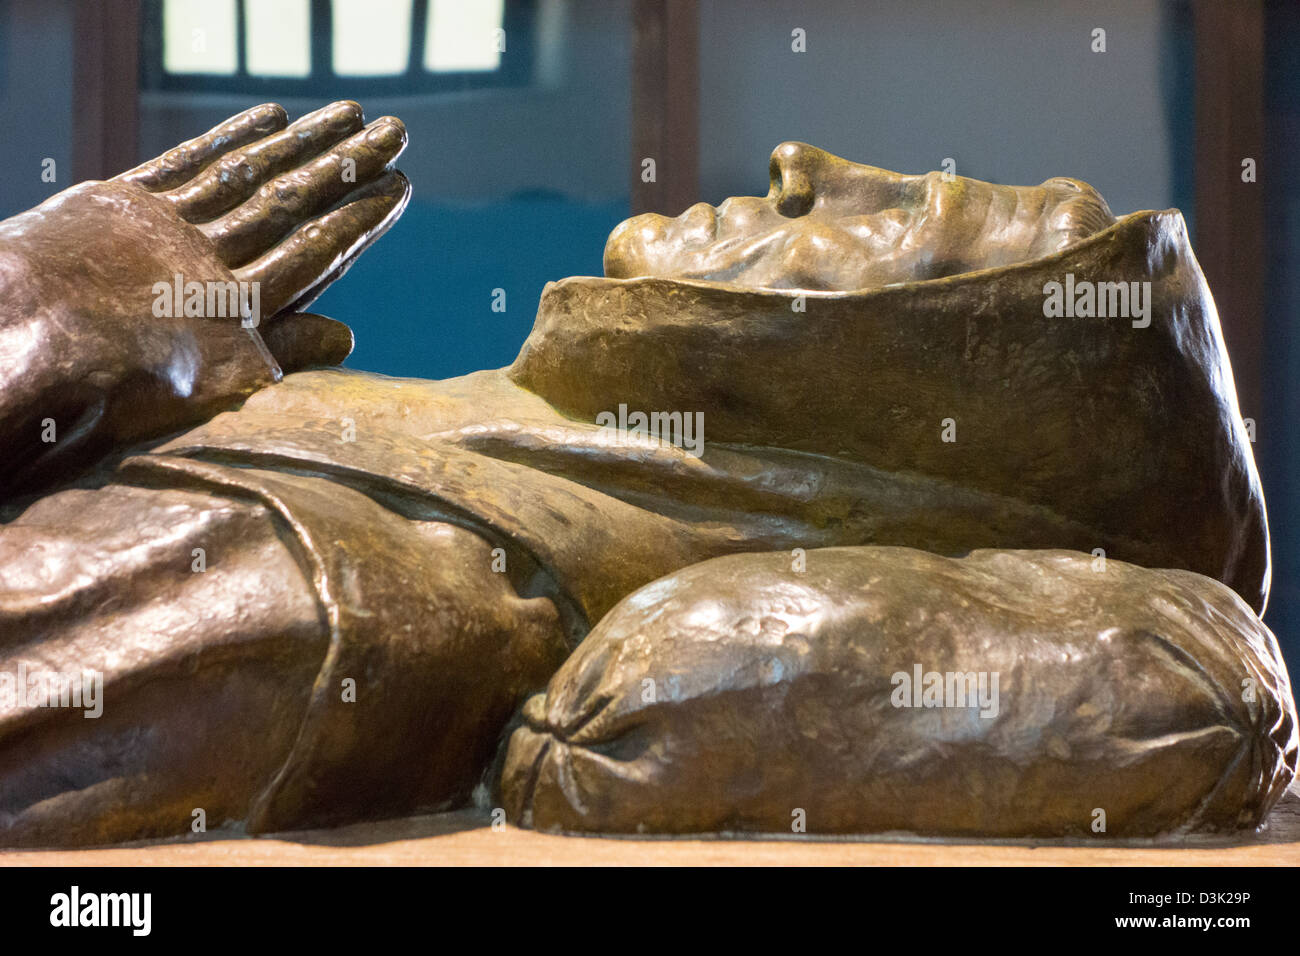 The Serra cenotaph by sculptor Joe Mora in Mission San Carlos Borromeo in Carmel commemorates Father Junipero Serra, - Stock Image